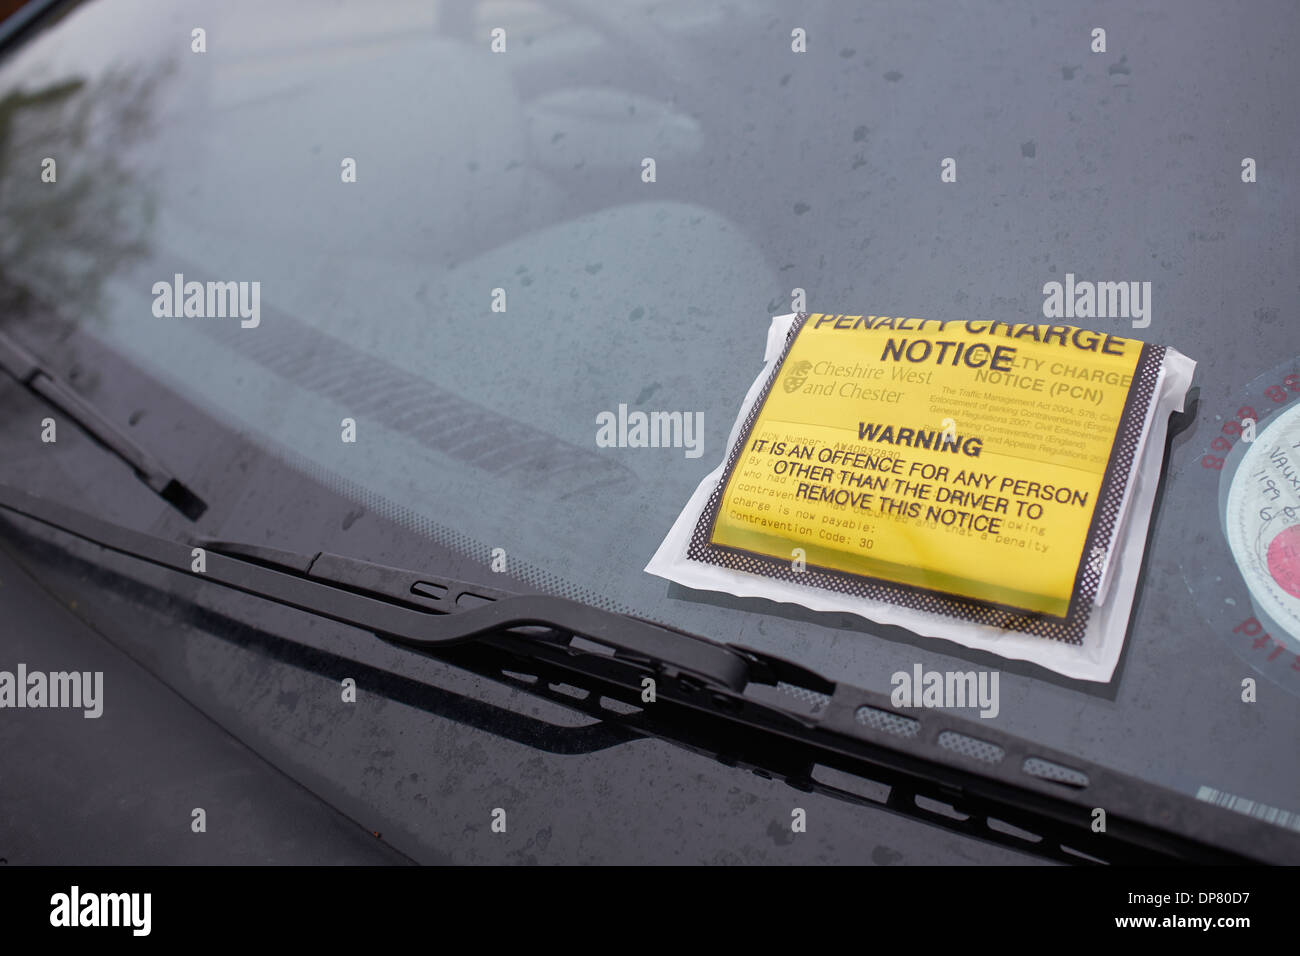 Car with a PCN Penalty Charge Notice on the windscreen - Stock Image